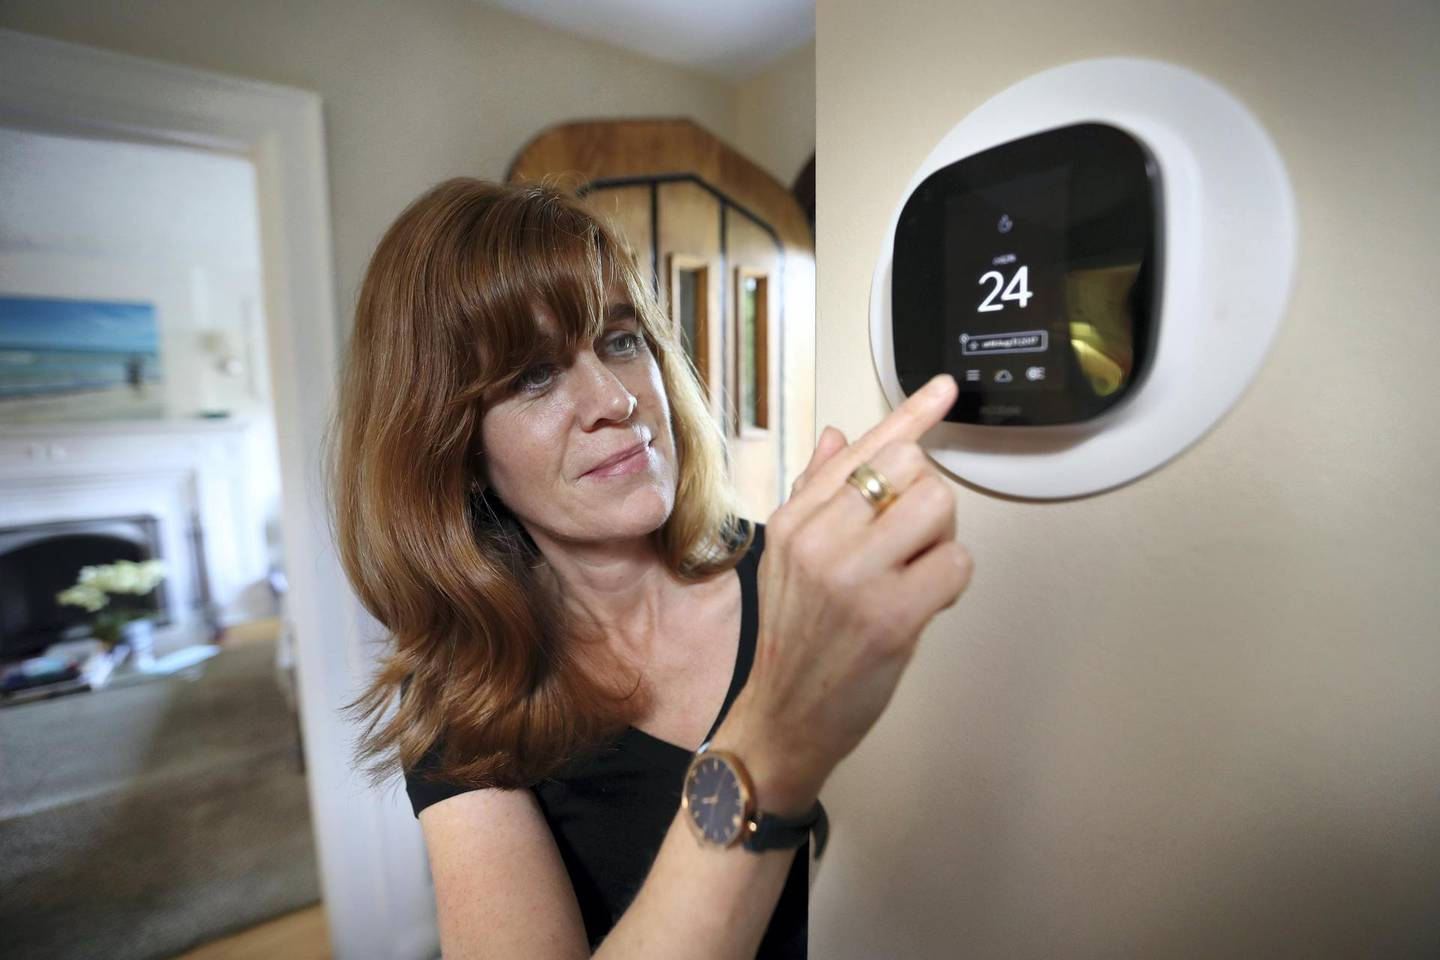 TORONTO, ON - AUGUST, 30    Diana Carradine with Ecobee smart thermostat in her home in the Eglinton and Avenue road area.  The province is launching the Green Ontario Fund, bankrolled with $377 milion in cap-and-trade revenues, to help homeowners and businesses with programs to reduce their greenhouse gas emissions. The first move is offering free smart thermostats to eligible homeowners, so they can more easily turn down the heat or air conditioning when they're not âehome -- saving on natural gas and electricity.        (Richard Lautens/Toronto Star via Getty Images)